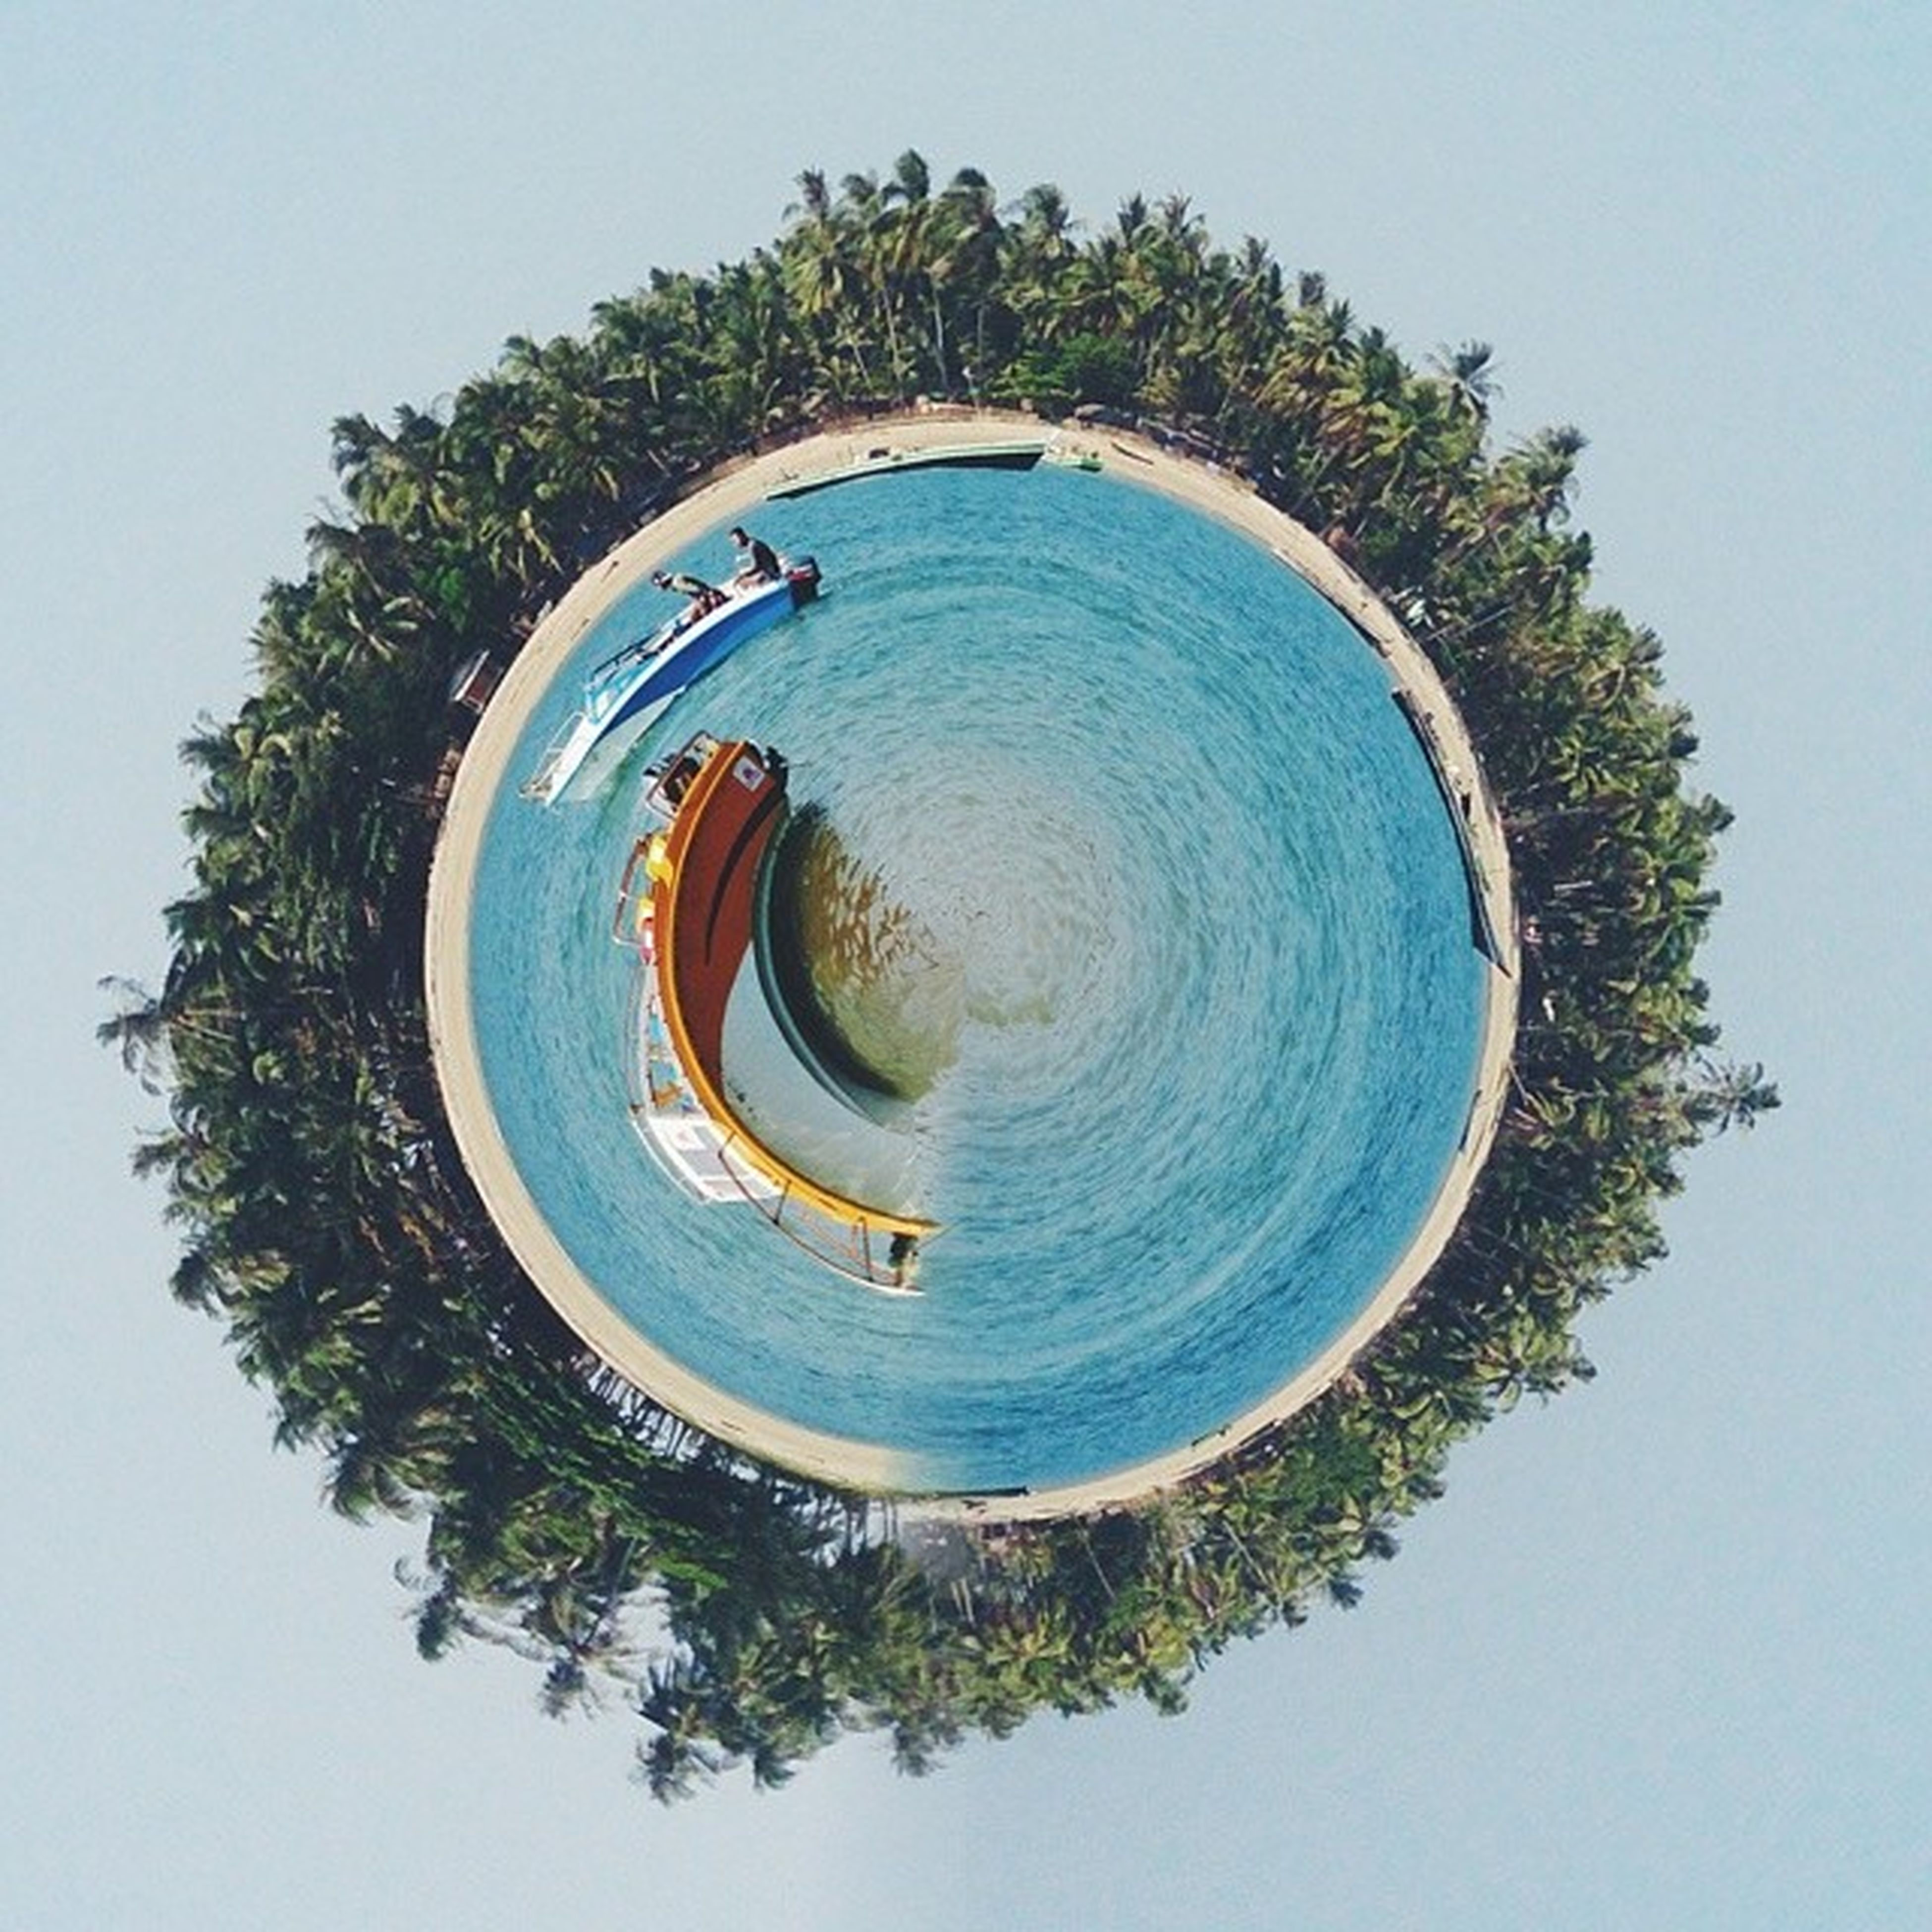 circle, blue, high angle view, clear sky, geometric shape, tree, day, directly above, no people, low angle view, outdoors, copy space, shape, nature, water, reflection, round, spiral, built structure, fish-eye lens